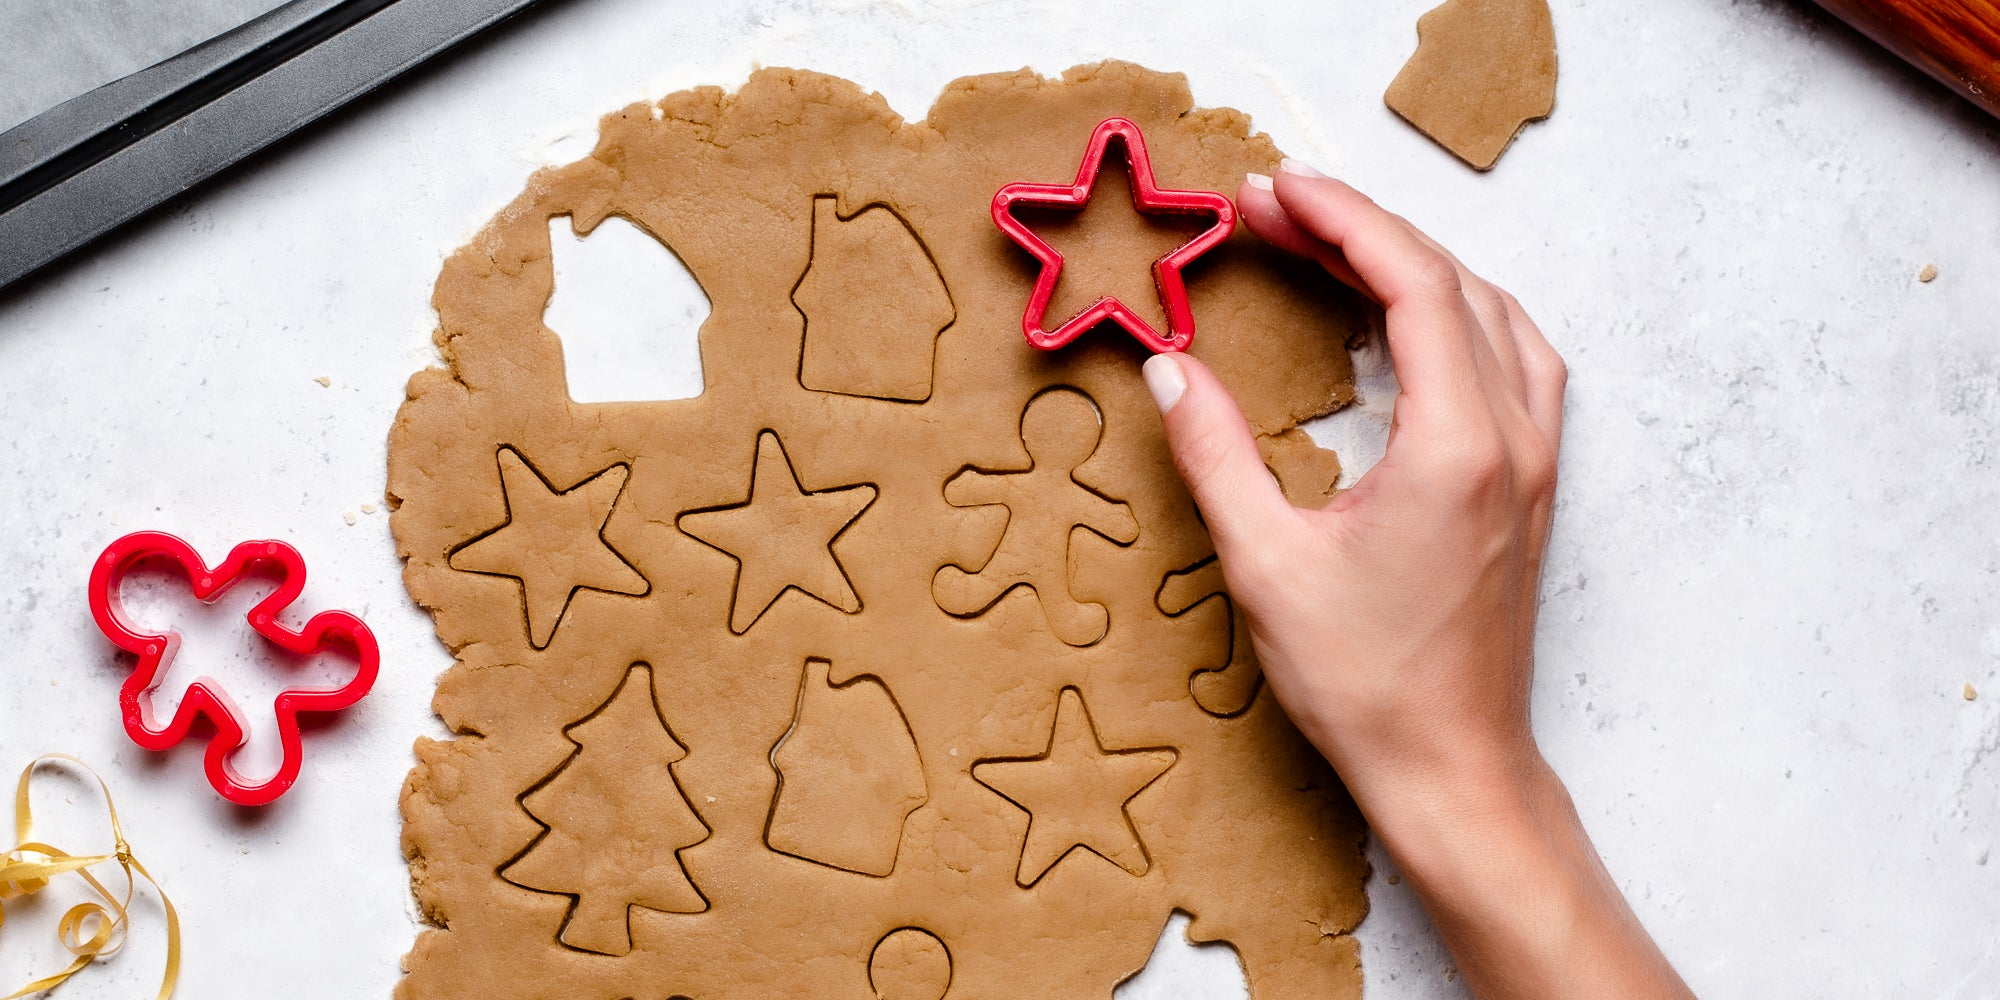 Top down view of a hand using a star cookie cutter to cut out vegan gingerbread dough